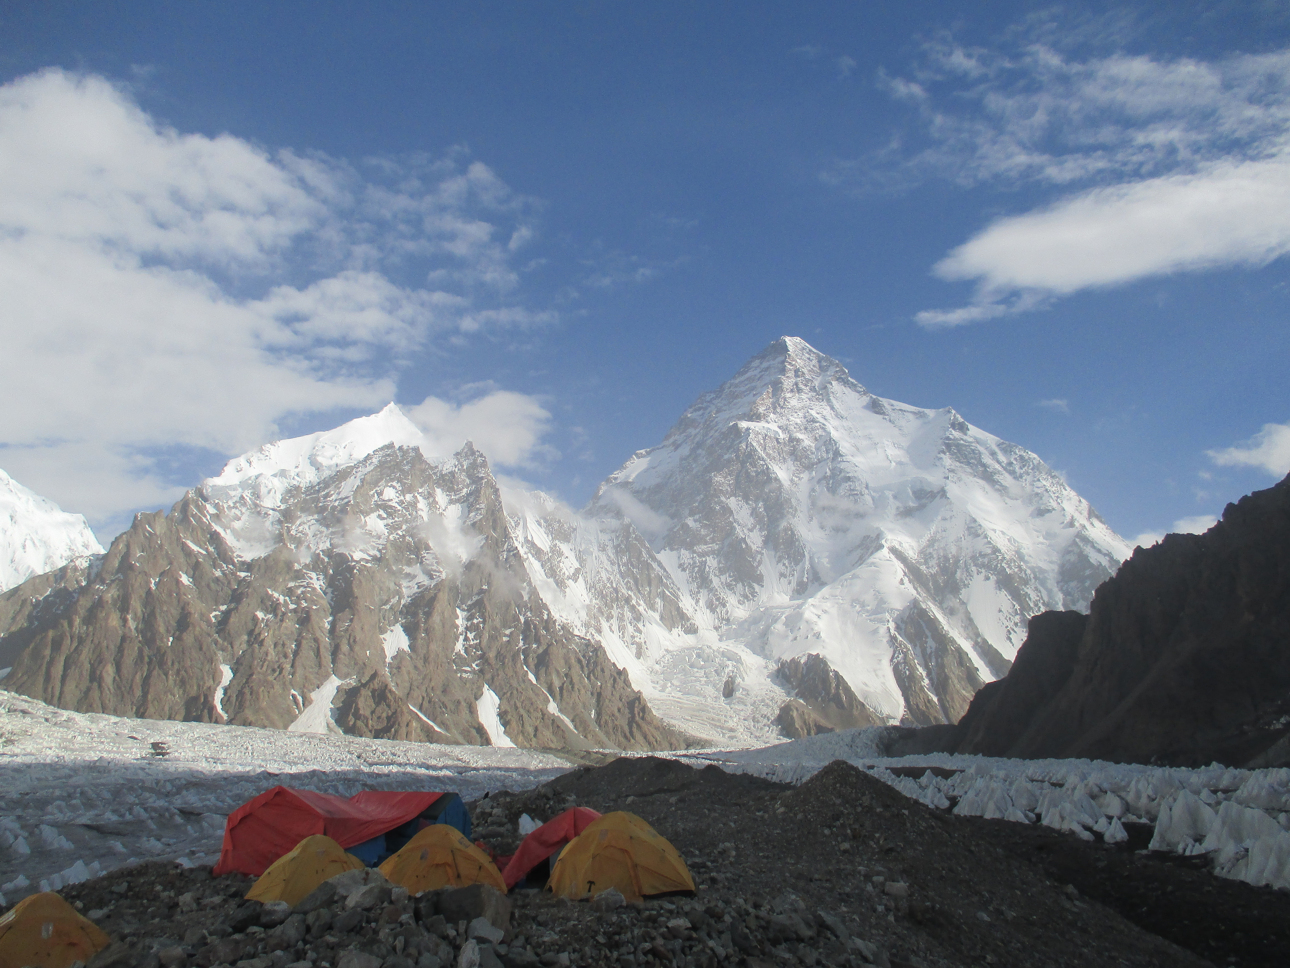 To the left of K2, was a bewildering mass of peaks and  glaciers whose existence I had not suspected. Sitting  alone gazing at the cirque forming the head of the  K2, glacier was an experience I shall not forget; no  mountain scene has impressed me more deeply  Eric Shipton